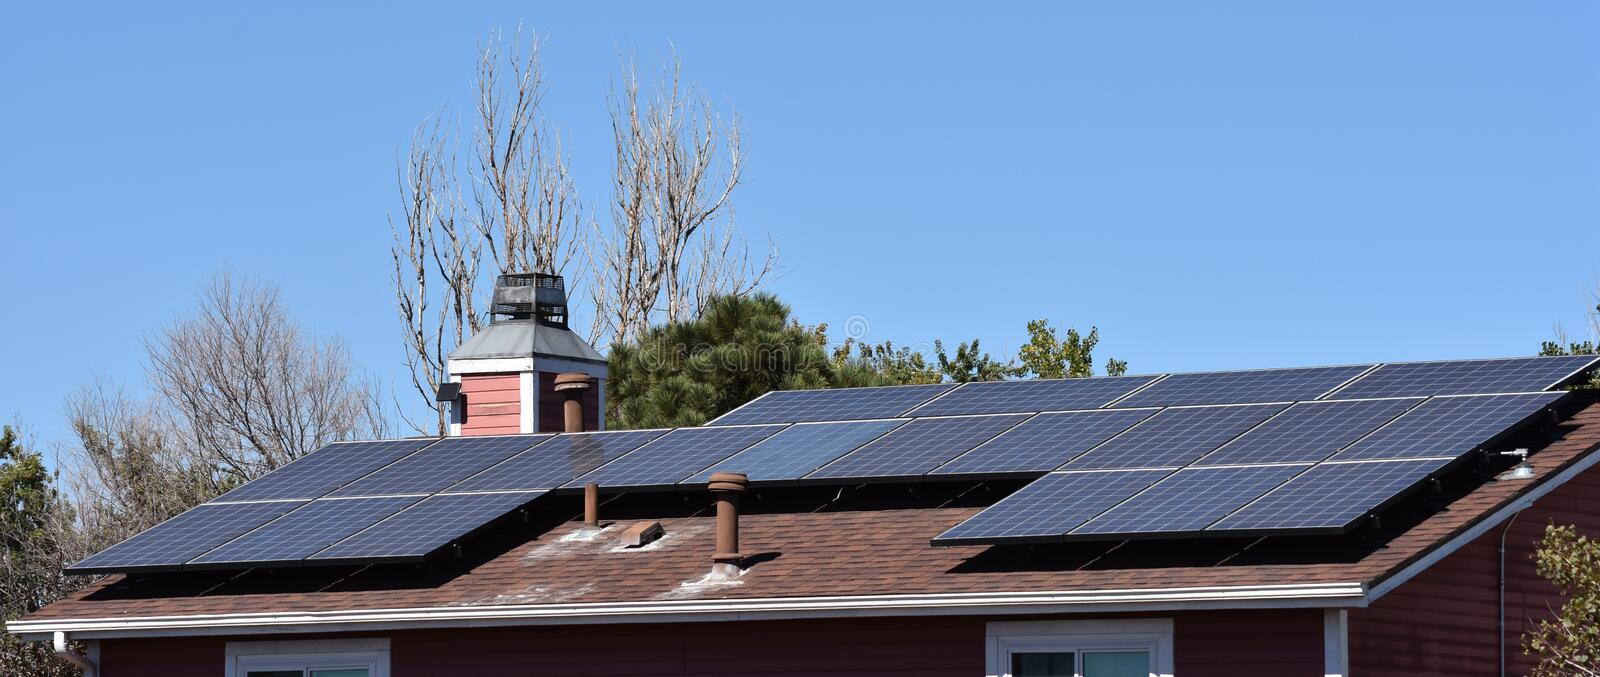 Solar Panels on Residence. Solar panels providing self sufficient energy and a green choice on a home in the Denver suburbs stock image